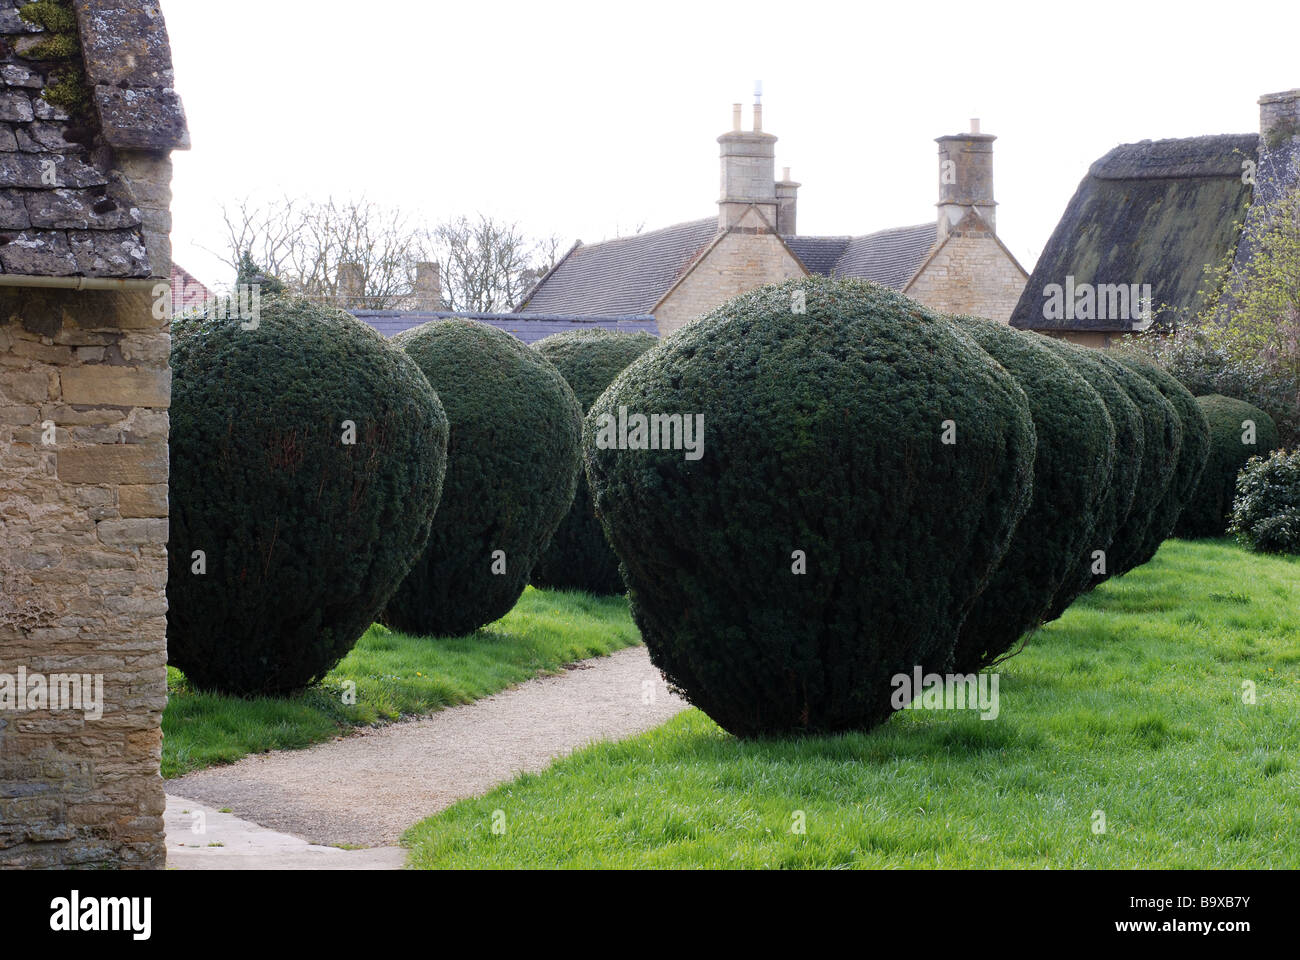 Clipped yews in St.Peter and St.Paul`s churchyard, Long Compton, Warwickshire, England, UK - Stock Image